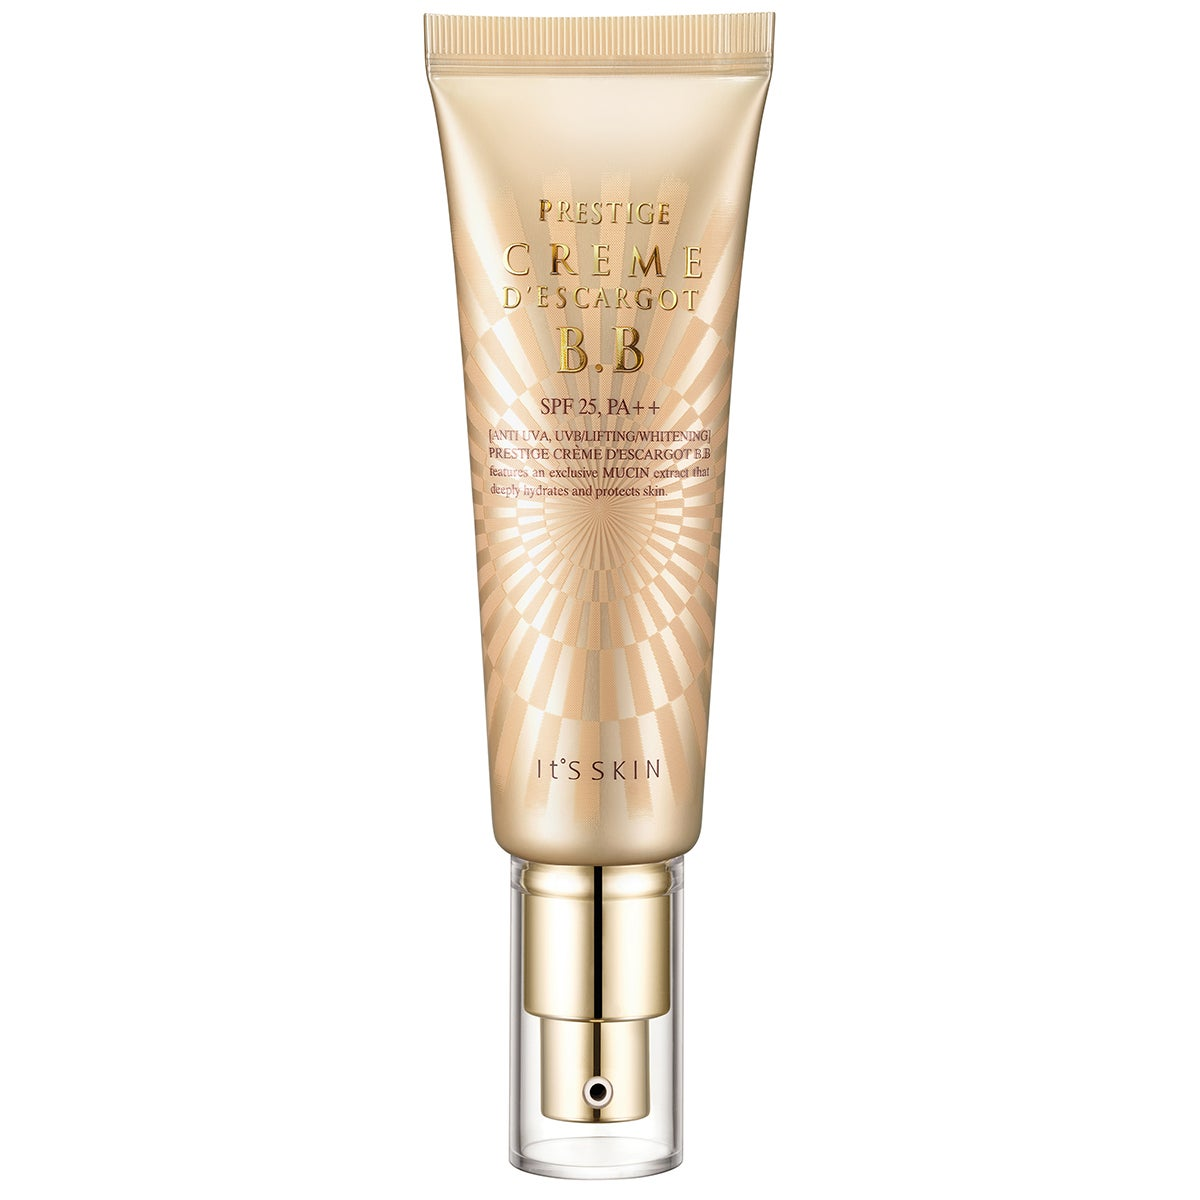 It'S SKIN Prestige Crème D´Escargot B.B